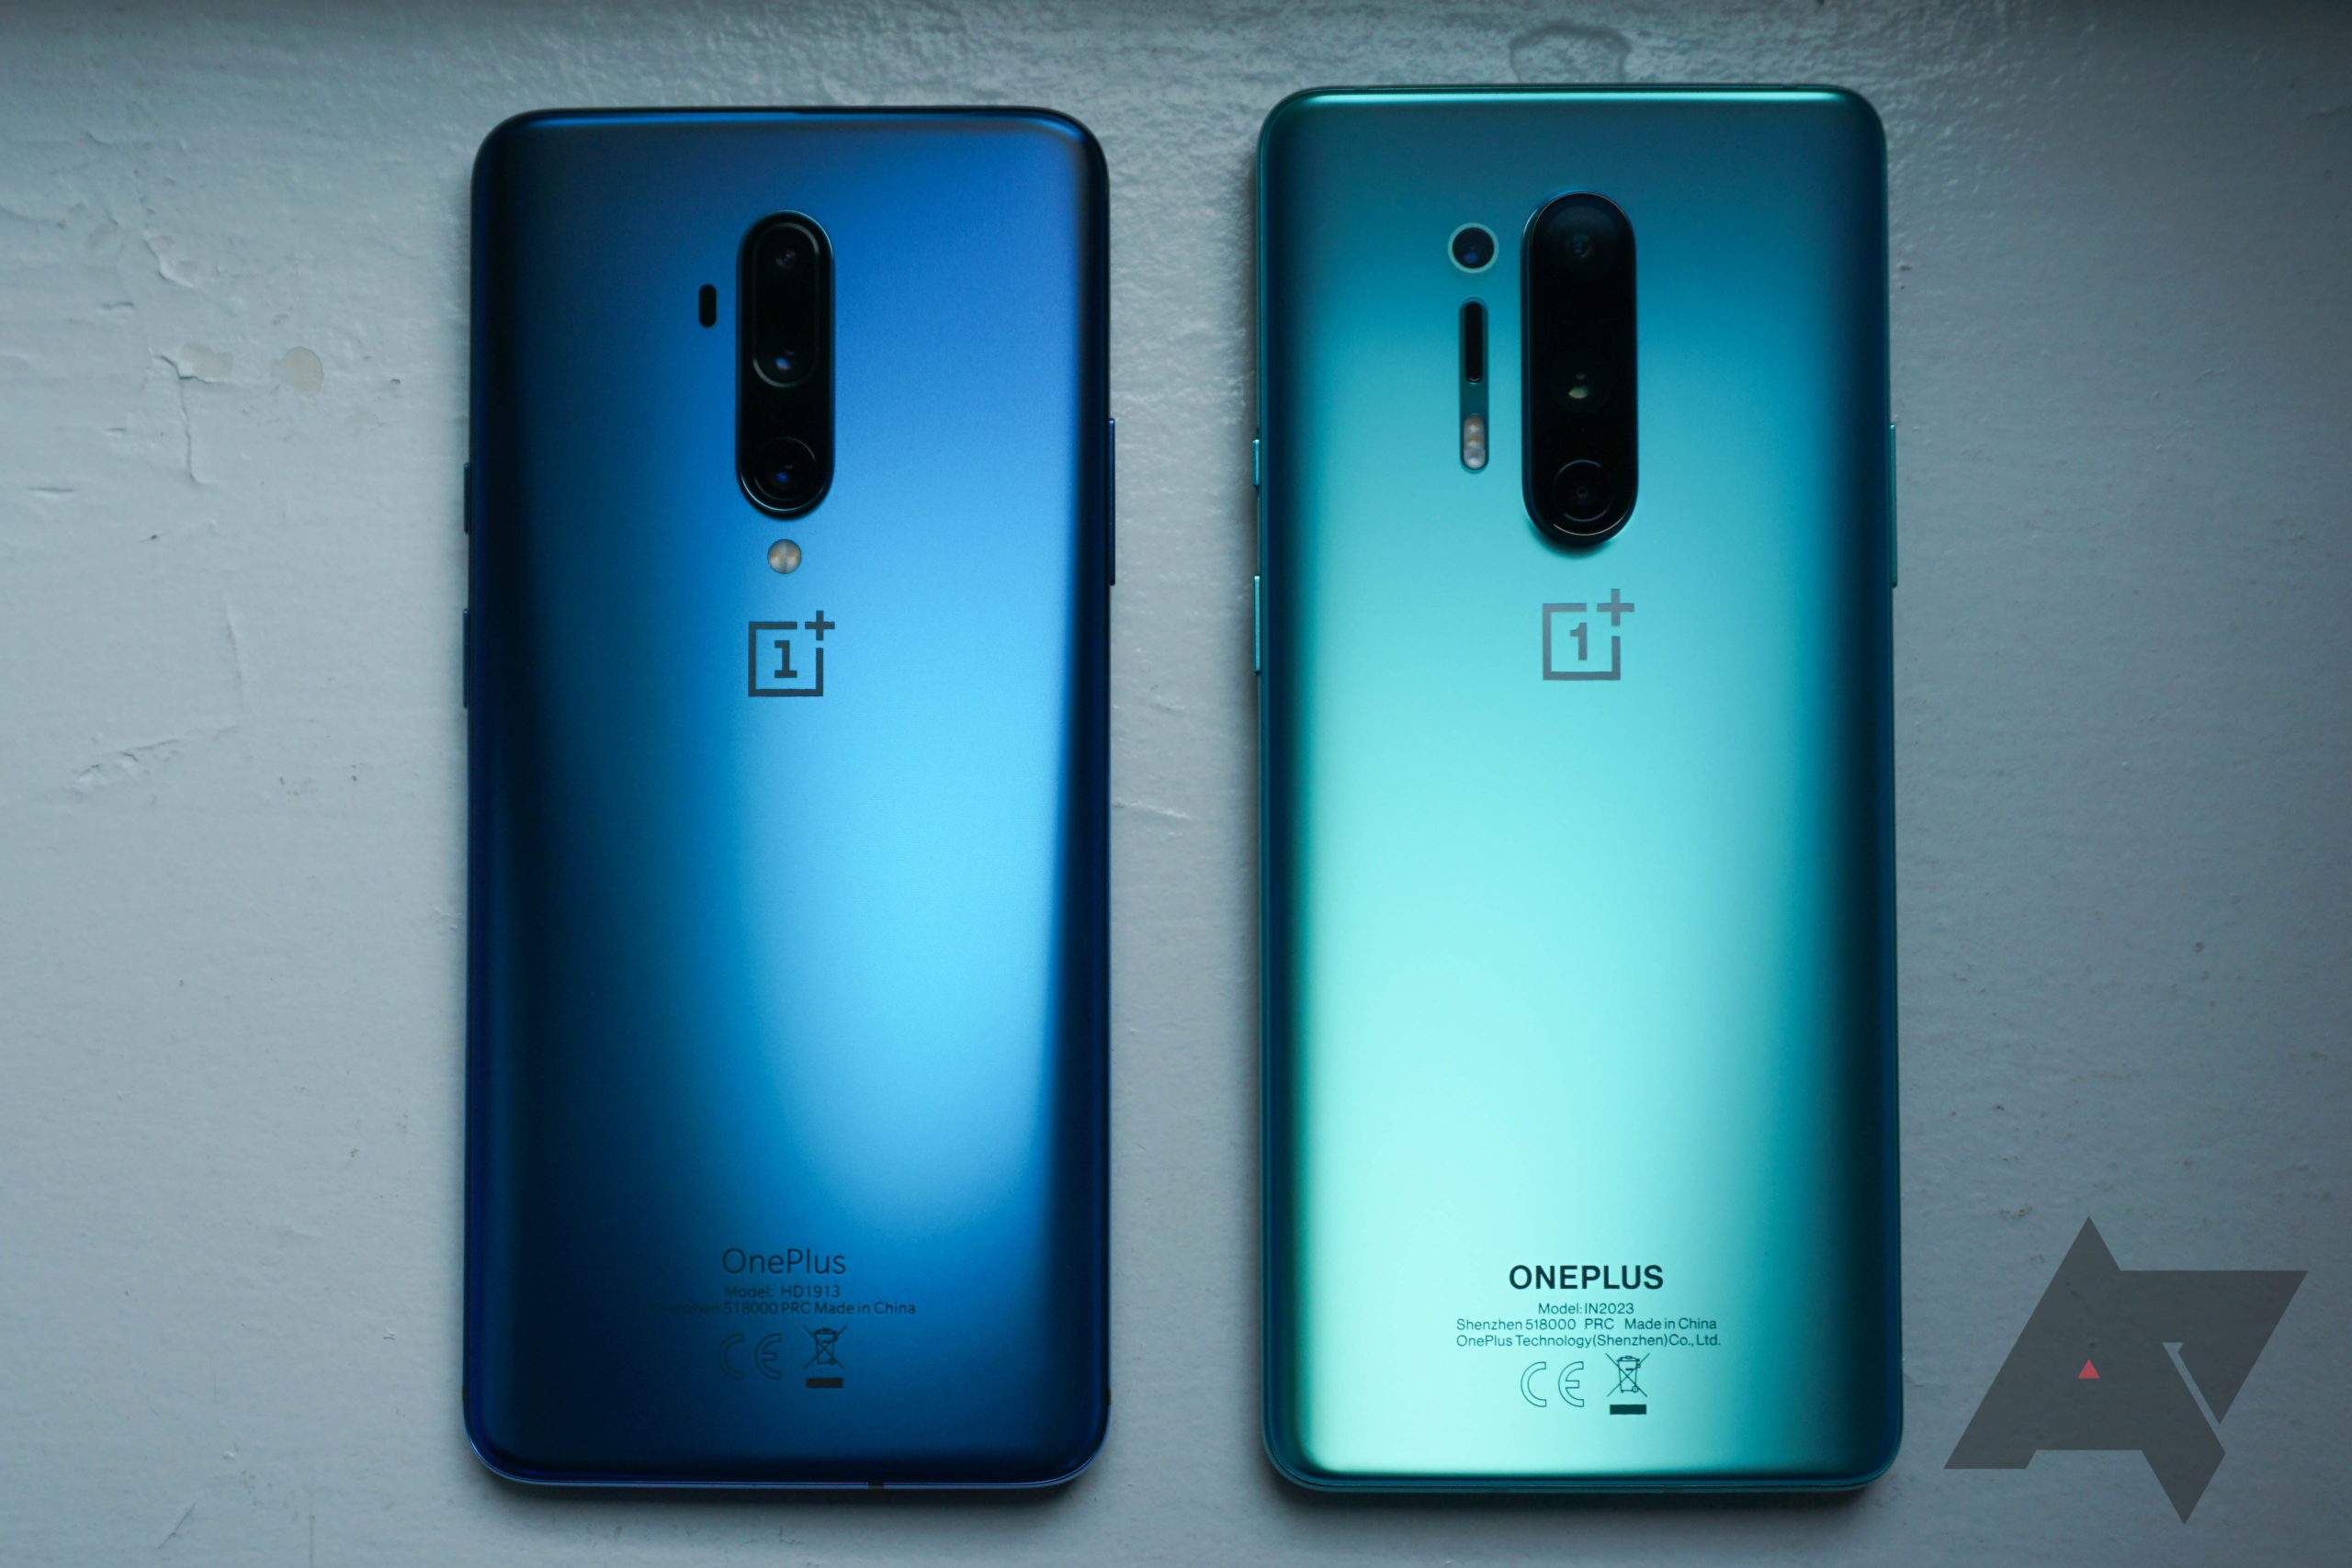 You Can Get A Oneplus 7t For 1 When You Buy An 8 Pro